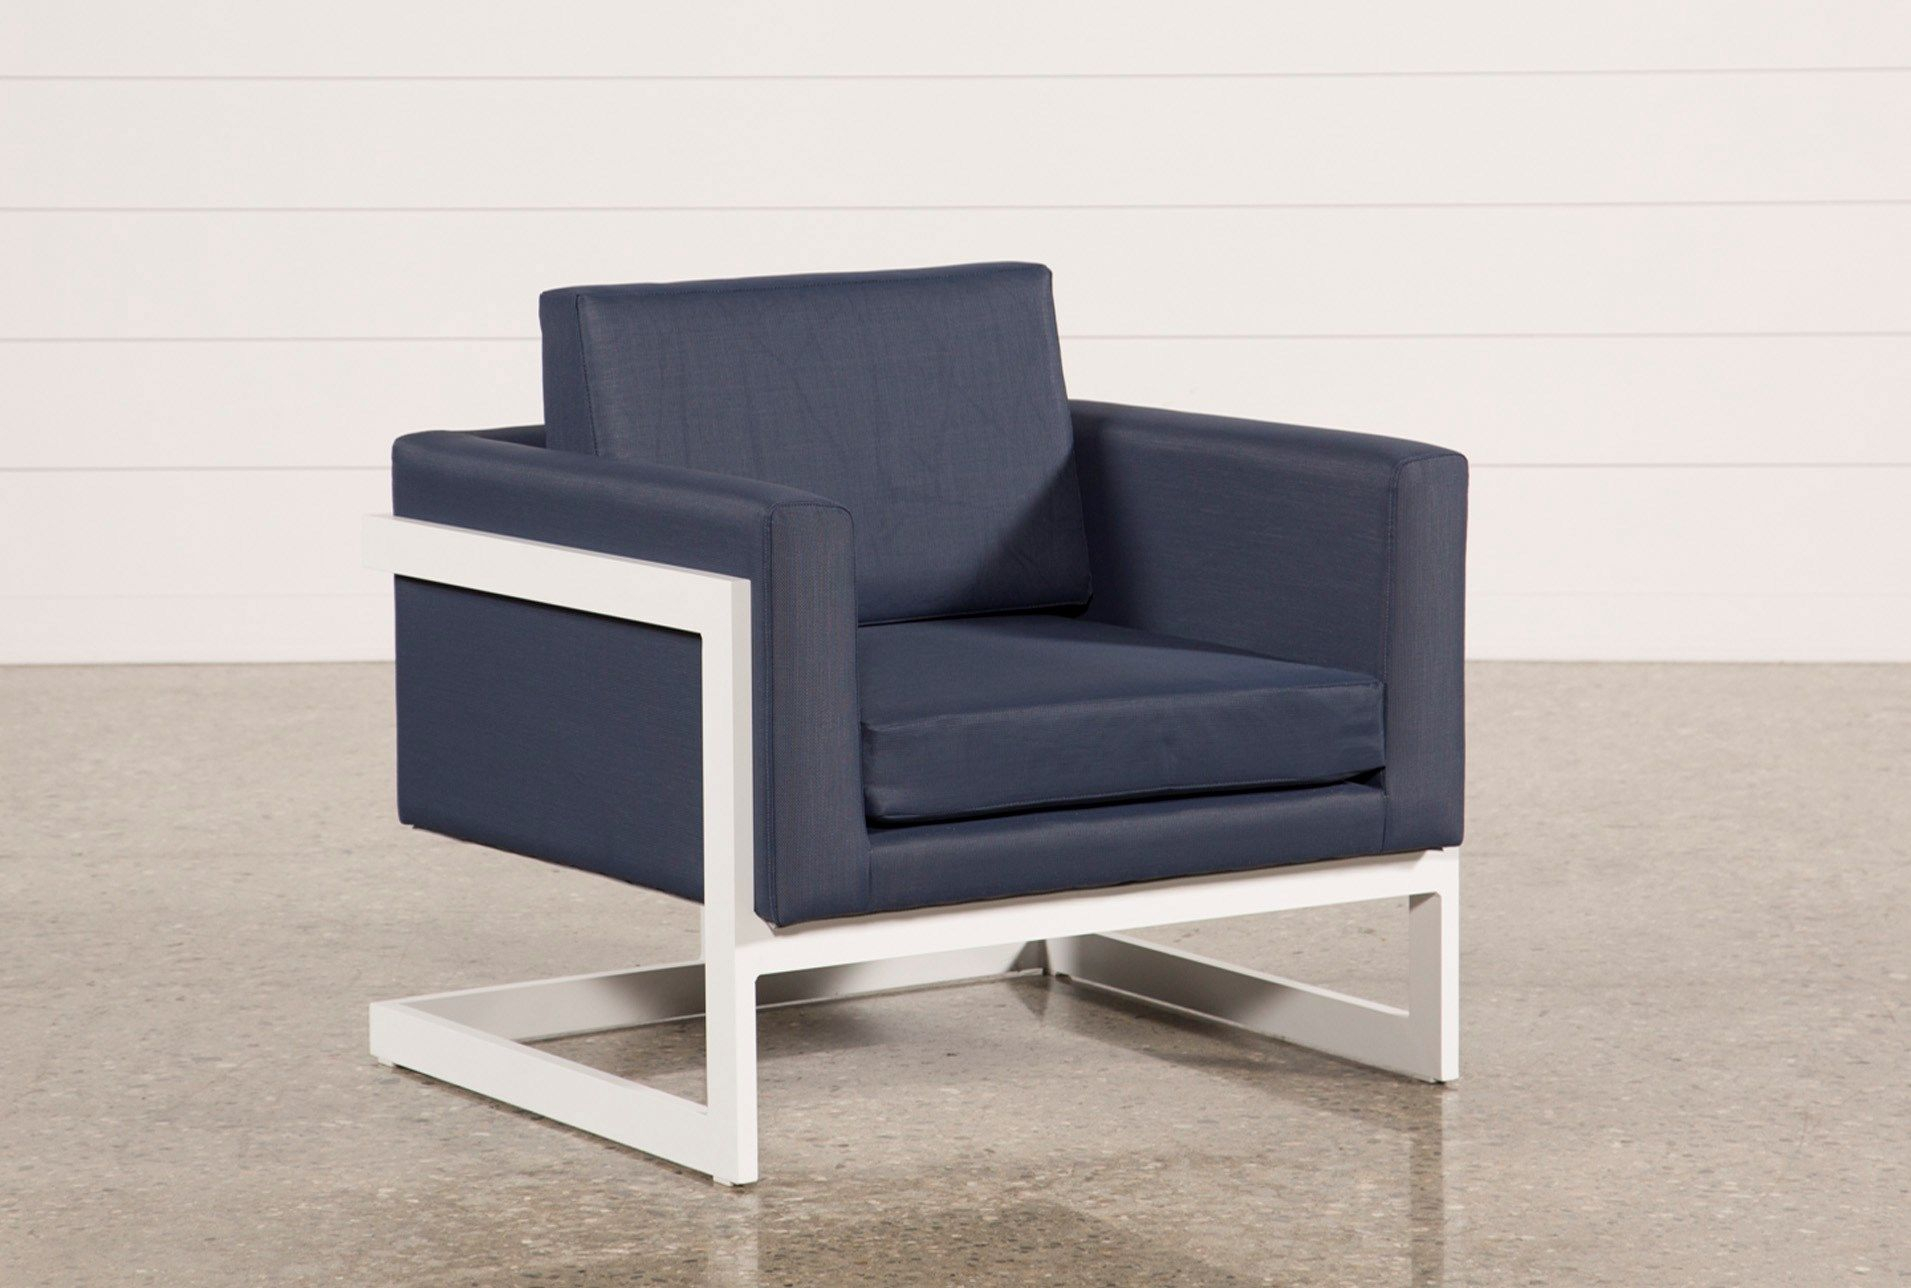 Outdoor Biscayne Ii Navy Lounge Chair | Patio | Pinterest | Patios Intended For Outdoor Koro Swivel Chairs (Image 10 of 25)